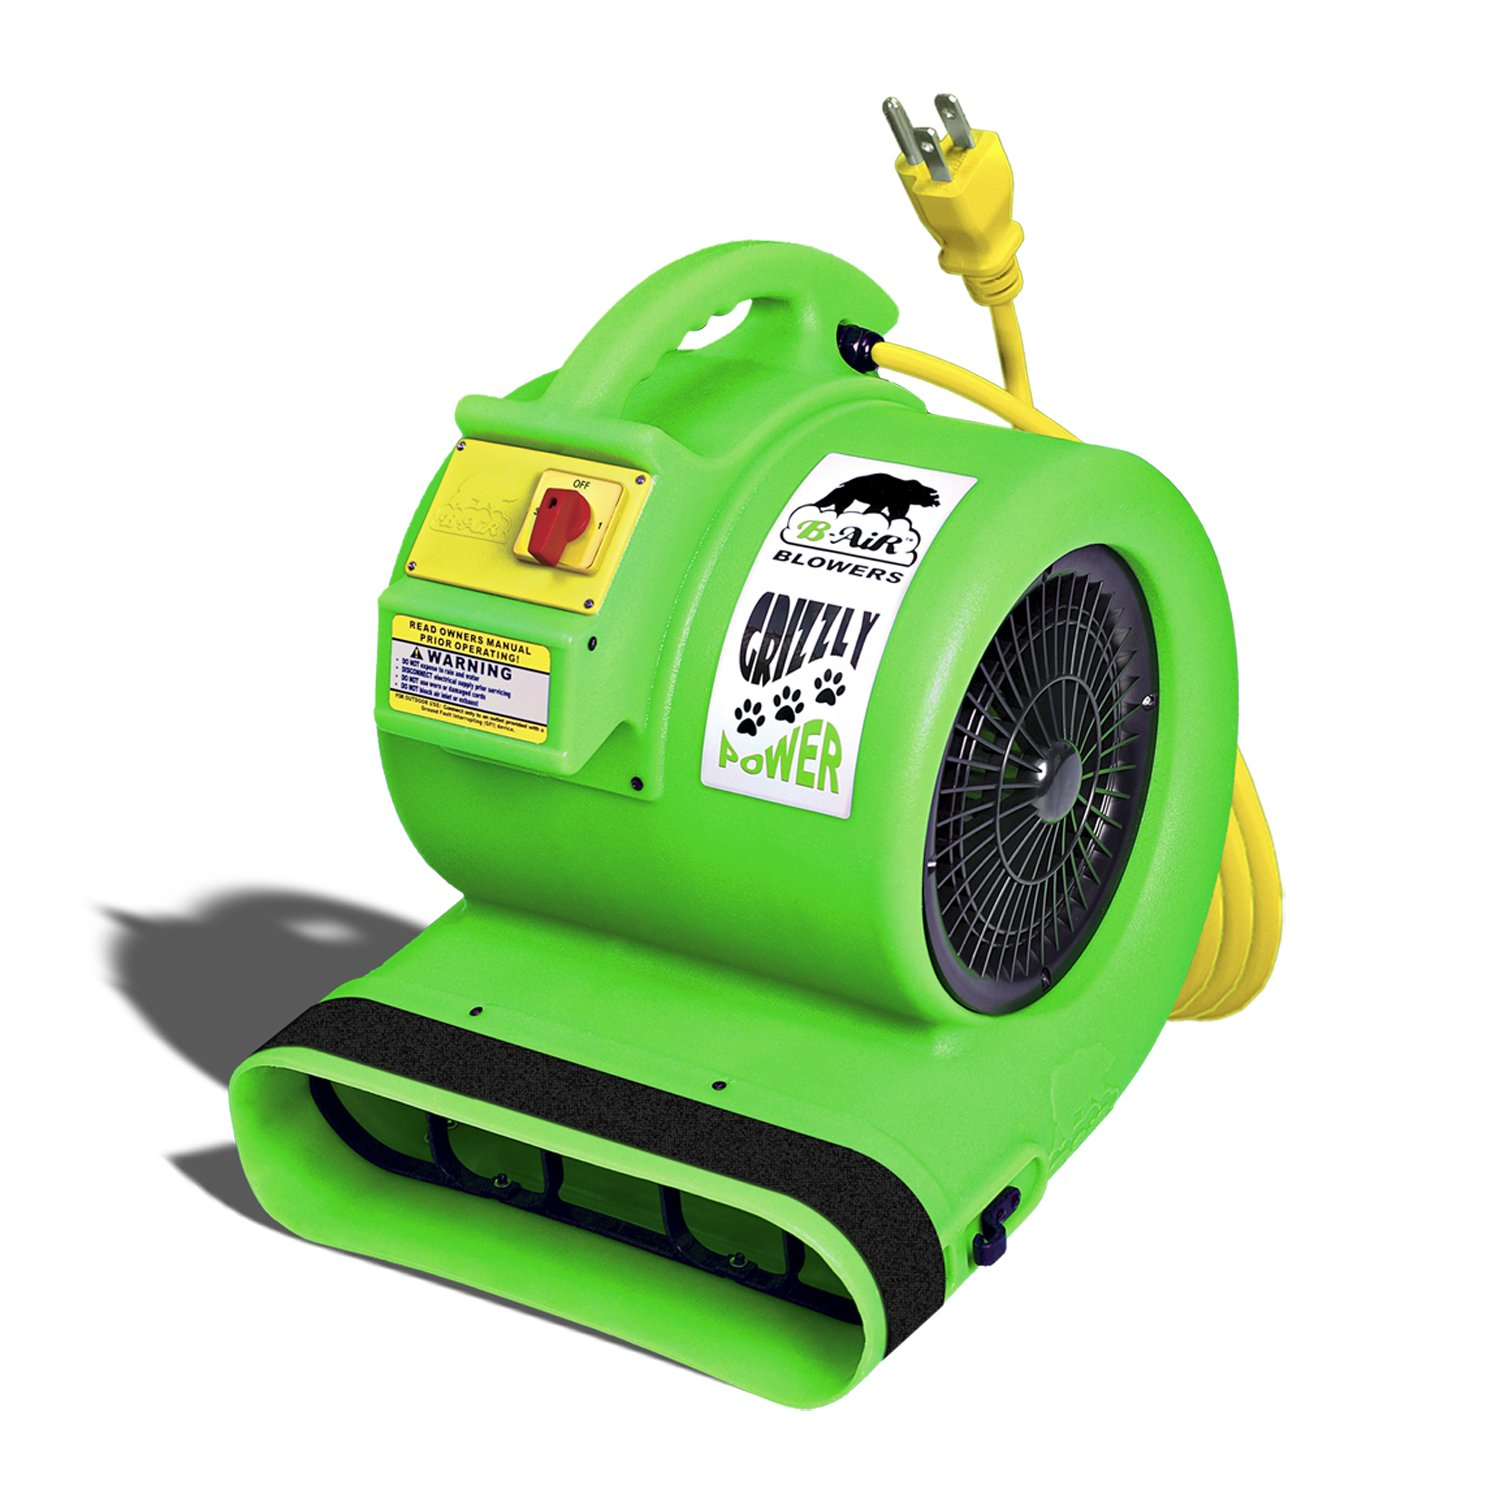 B-Air Grizzly GP-1 1 HP Air Grizzly Mover Carpet Dryer Floor Fan for Water Damage Restoration and Pet Cage Dryer Green